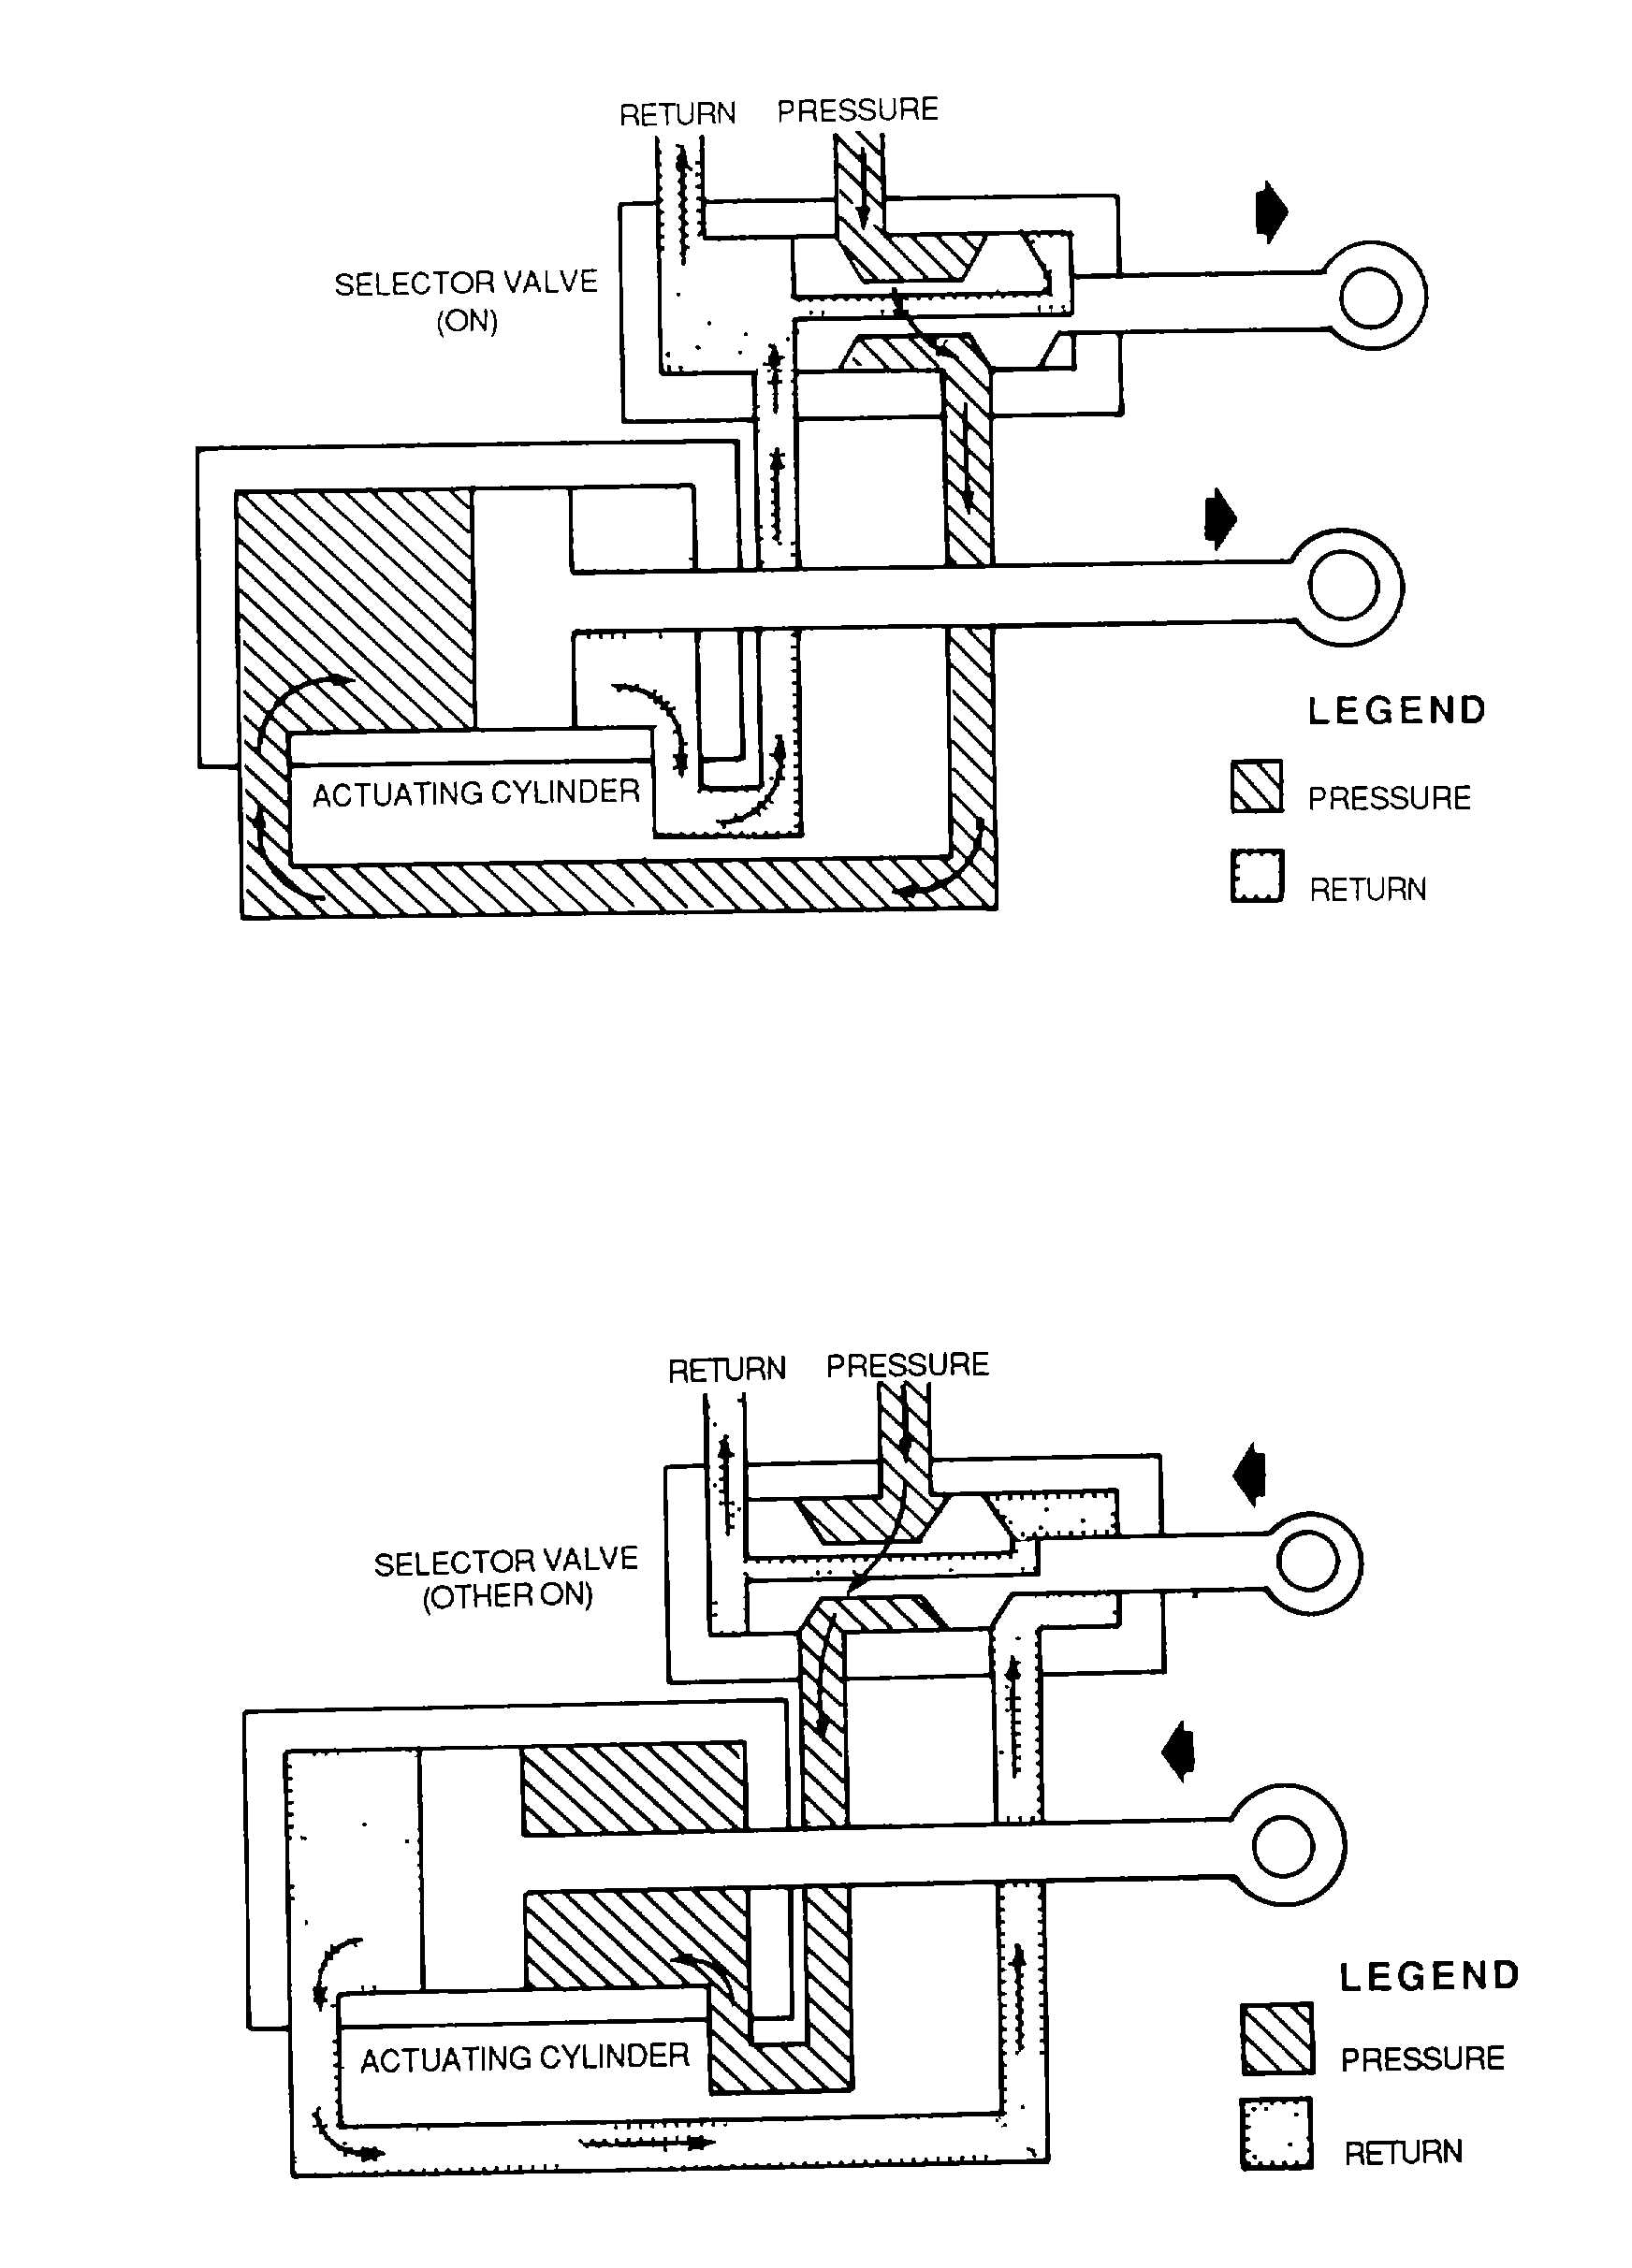 Figure 4-134. Double-Action Actuating Cylinder (Extension)